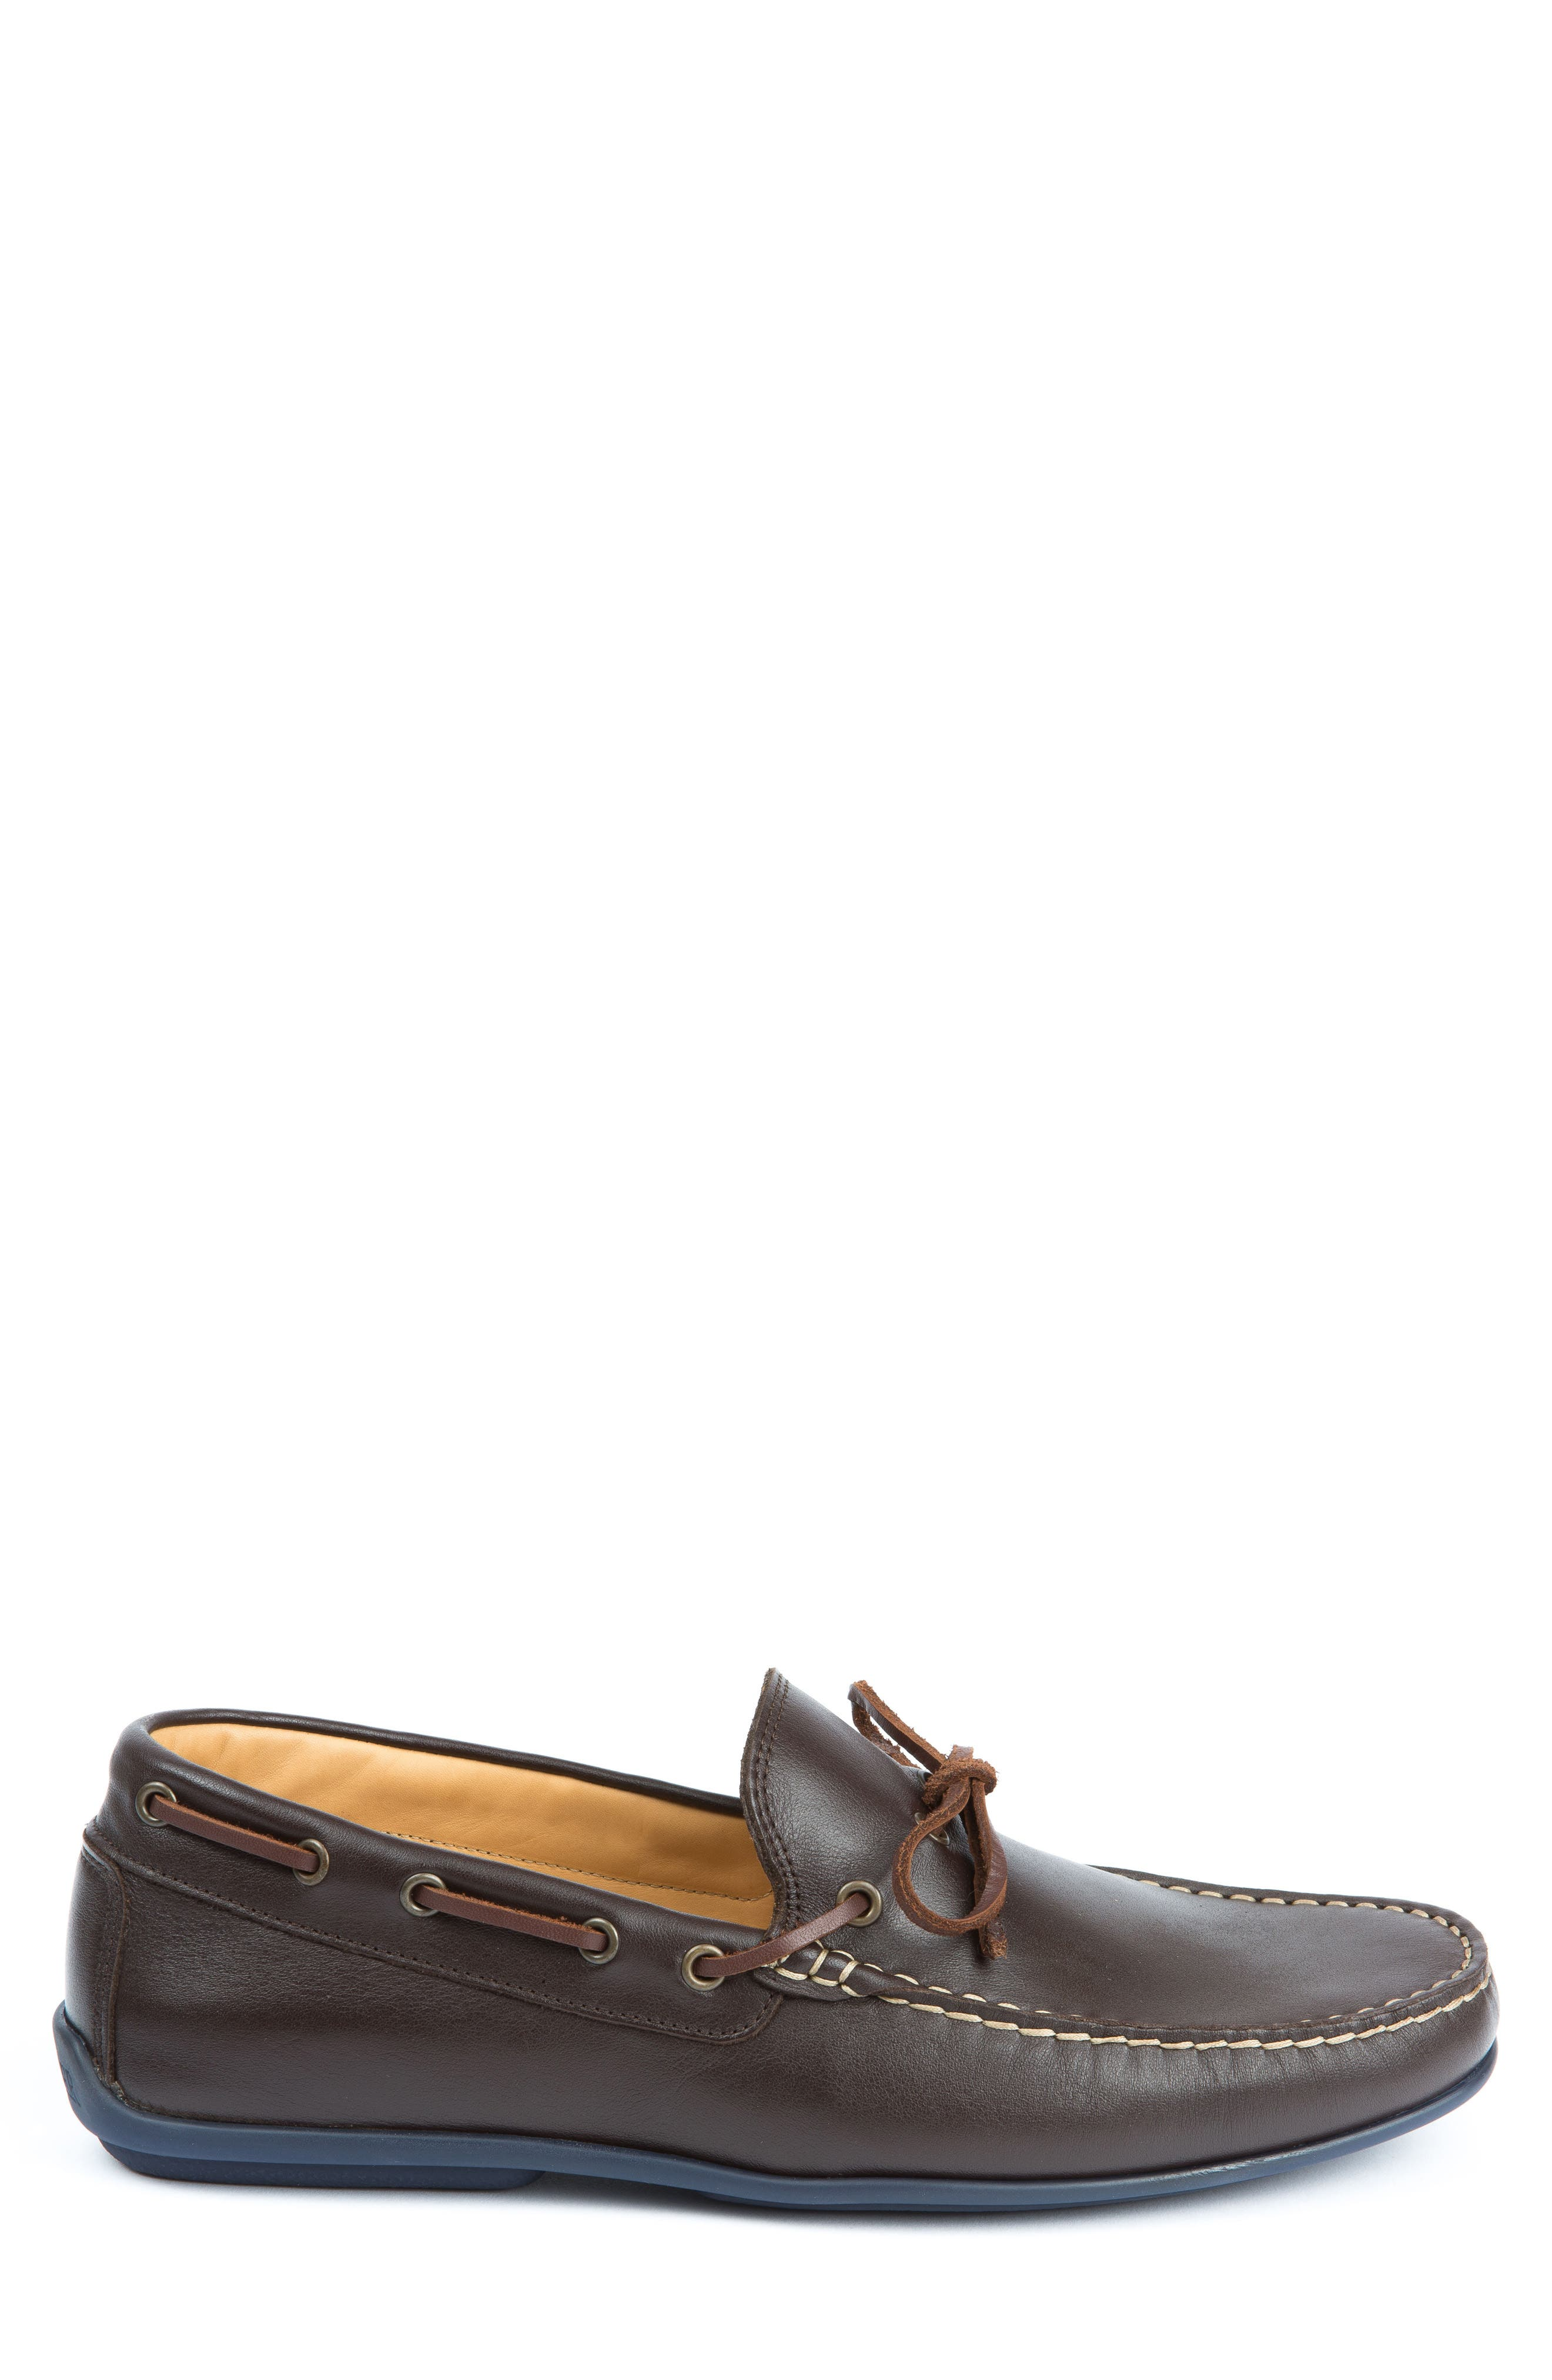 Fillmores Loafer,                             Alternate thumbnail 3, color,                             BROWN LEATHER/ NATURAL/ NAVY